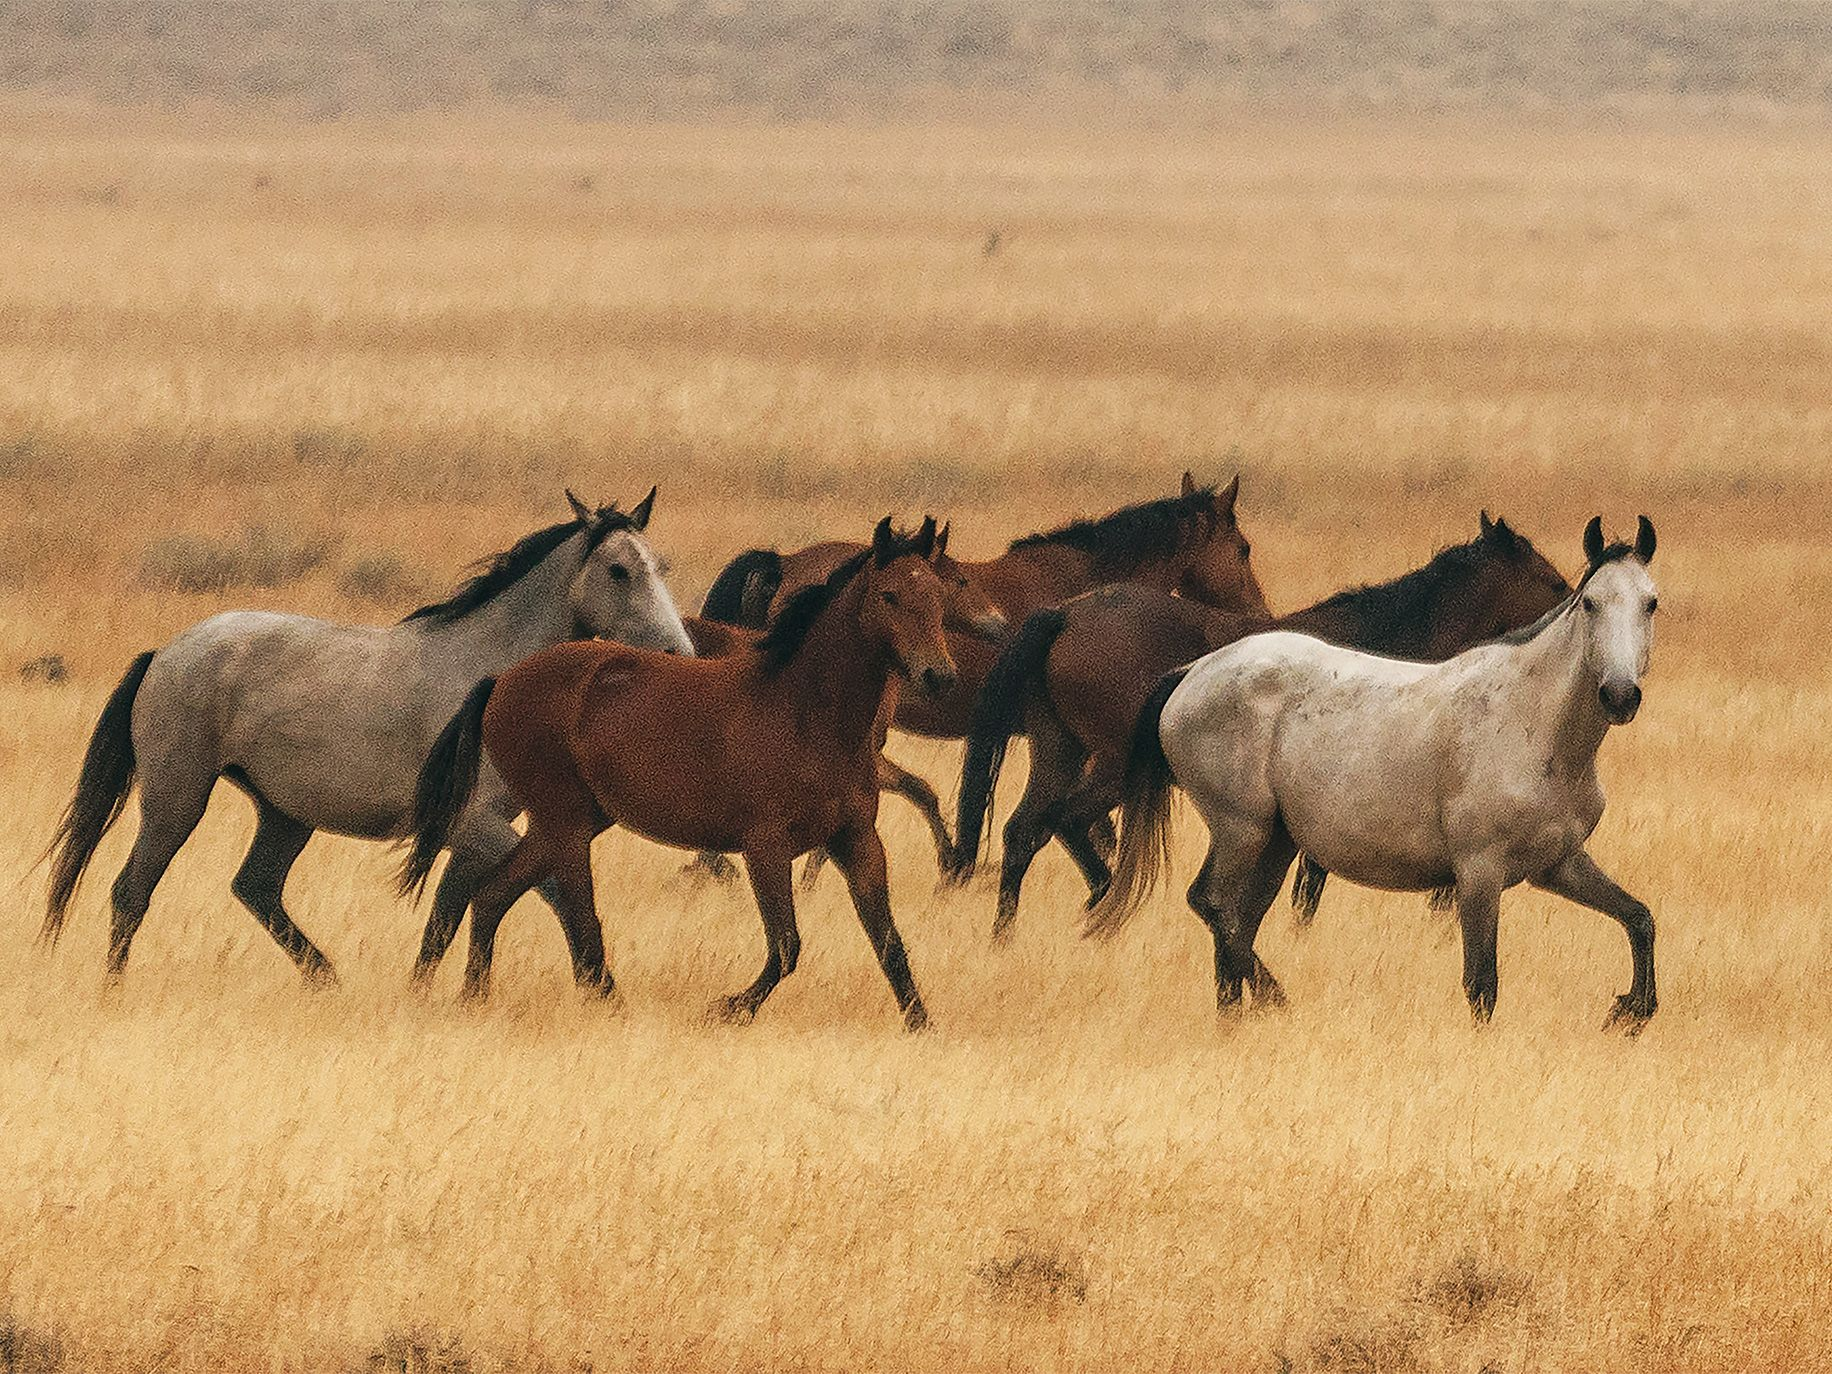 Feral Horses Fierce Controversy